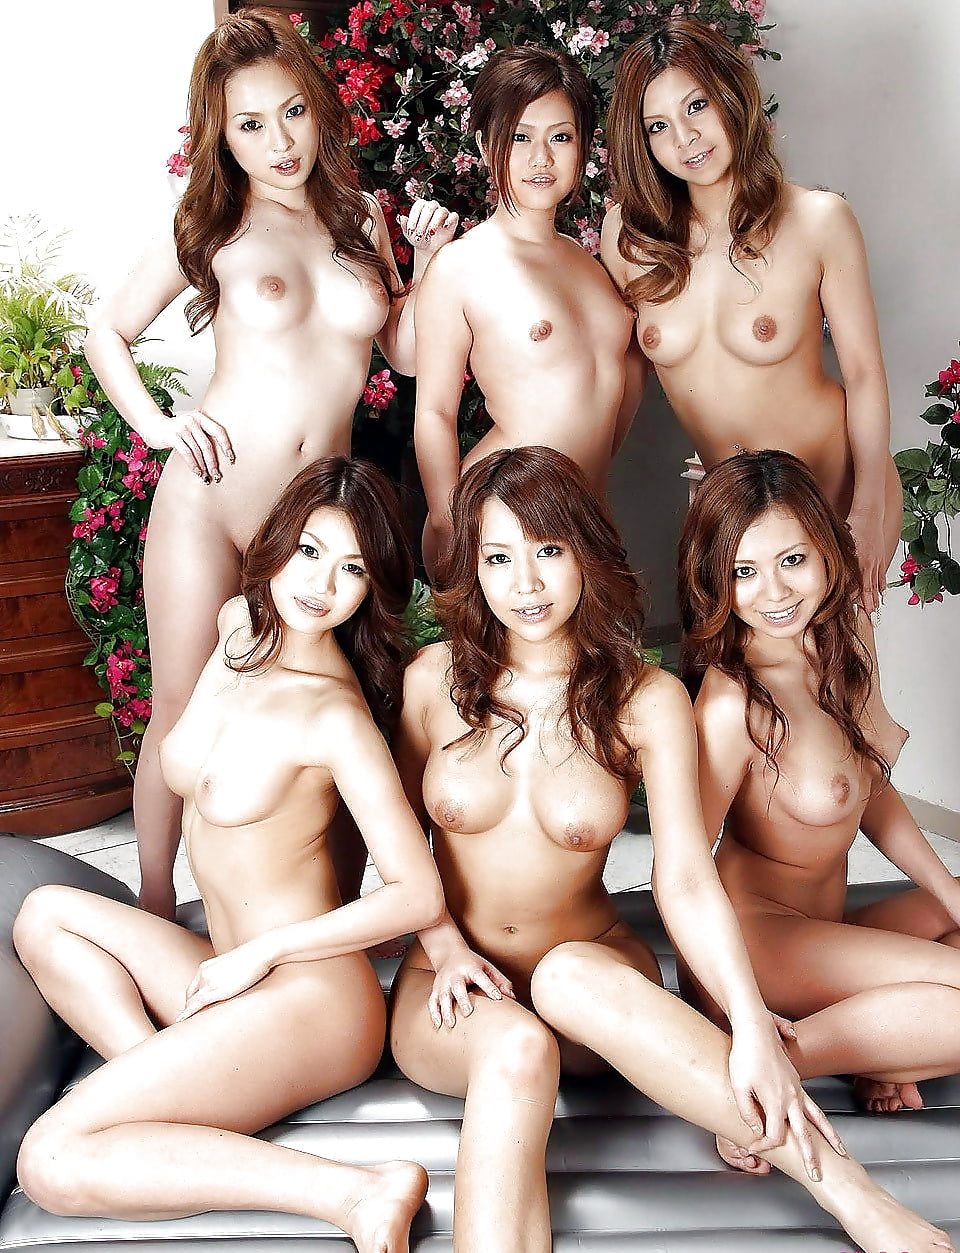 Xx sexy go-around group photo, keeley hazell girlfolio